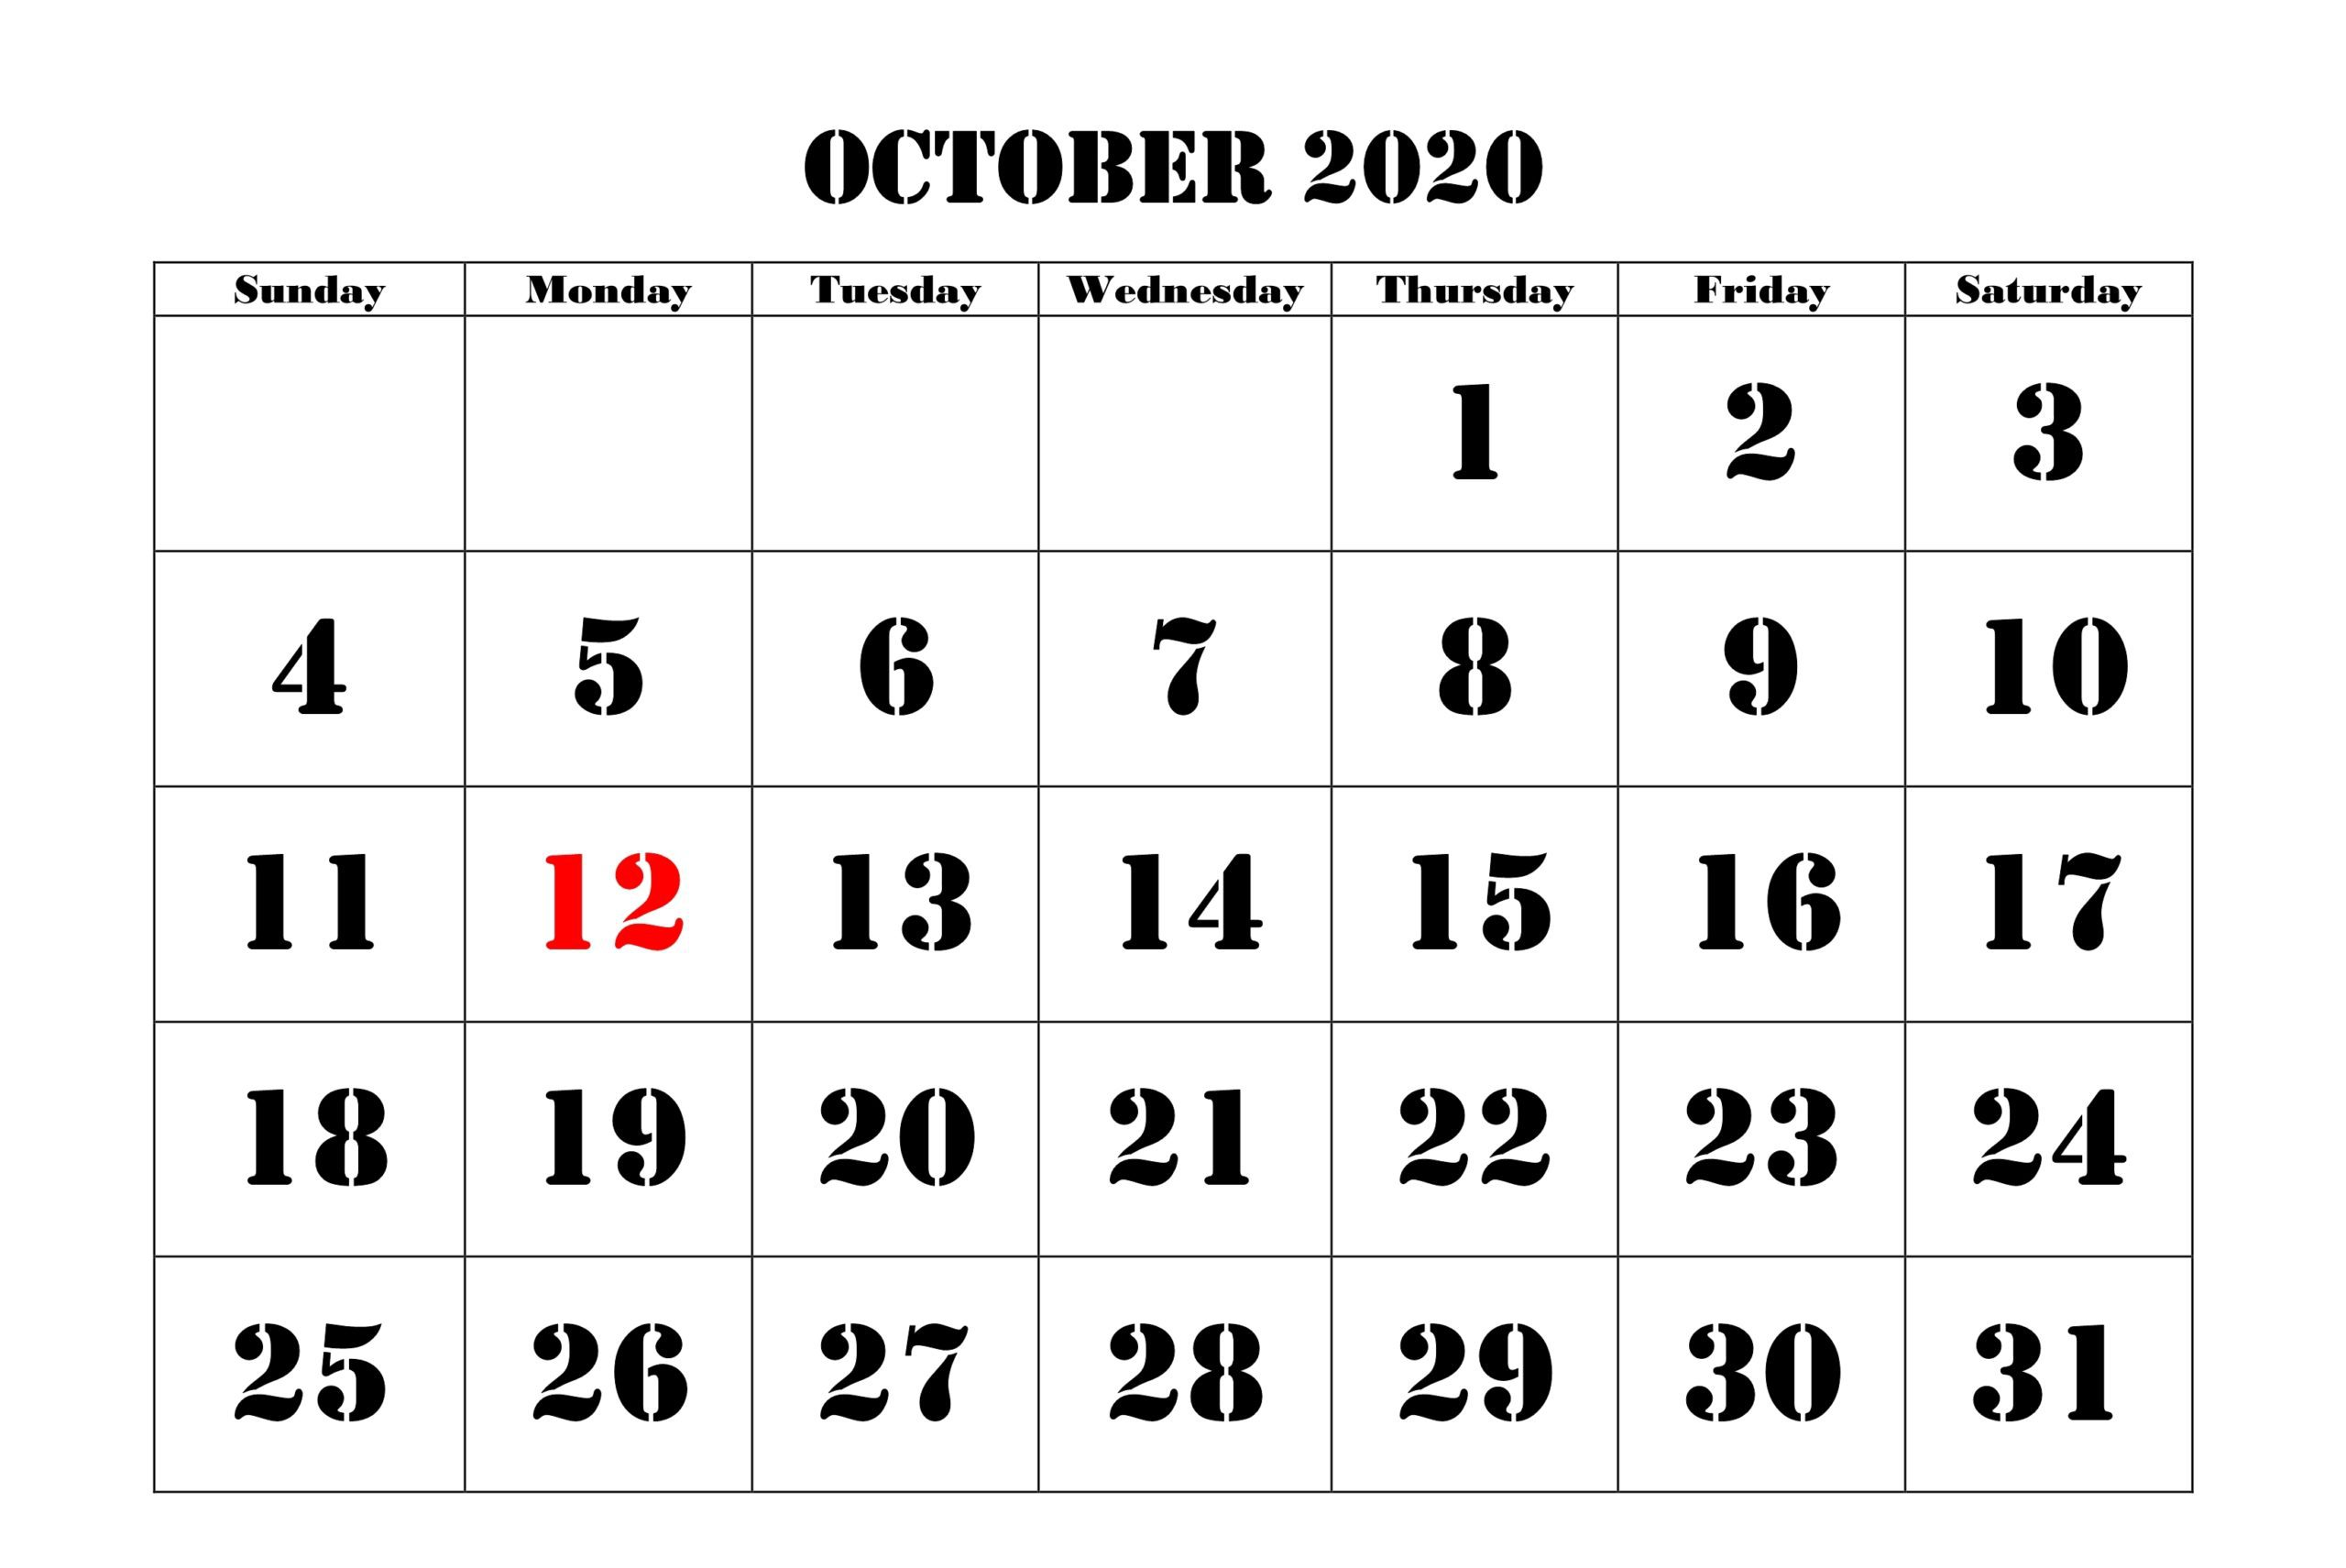 October Calendar 2020 Holidays